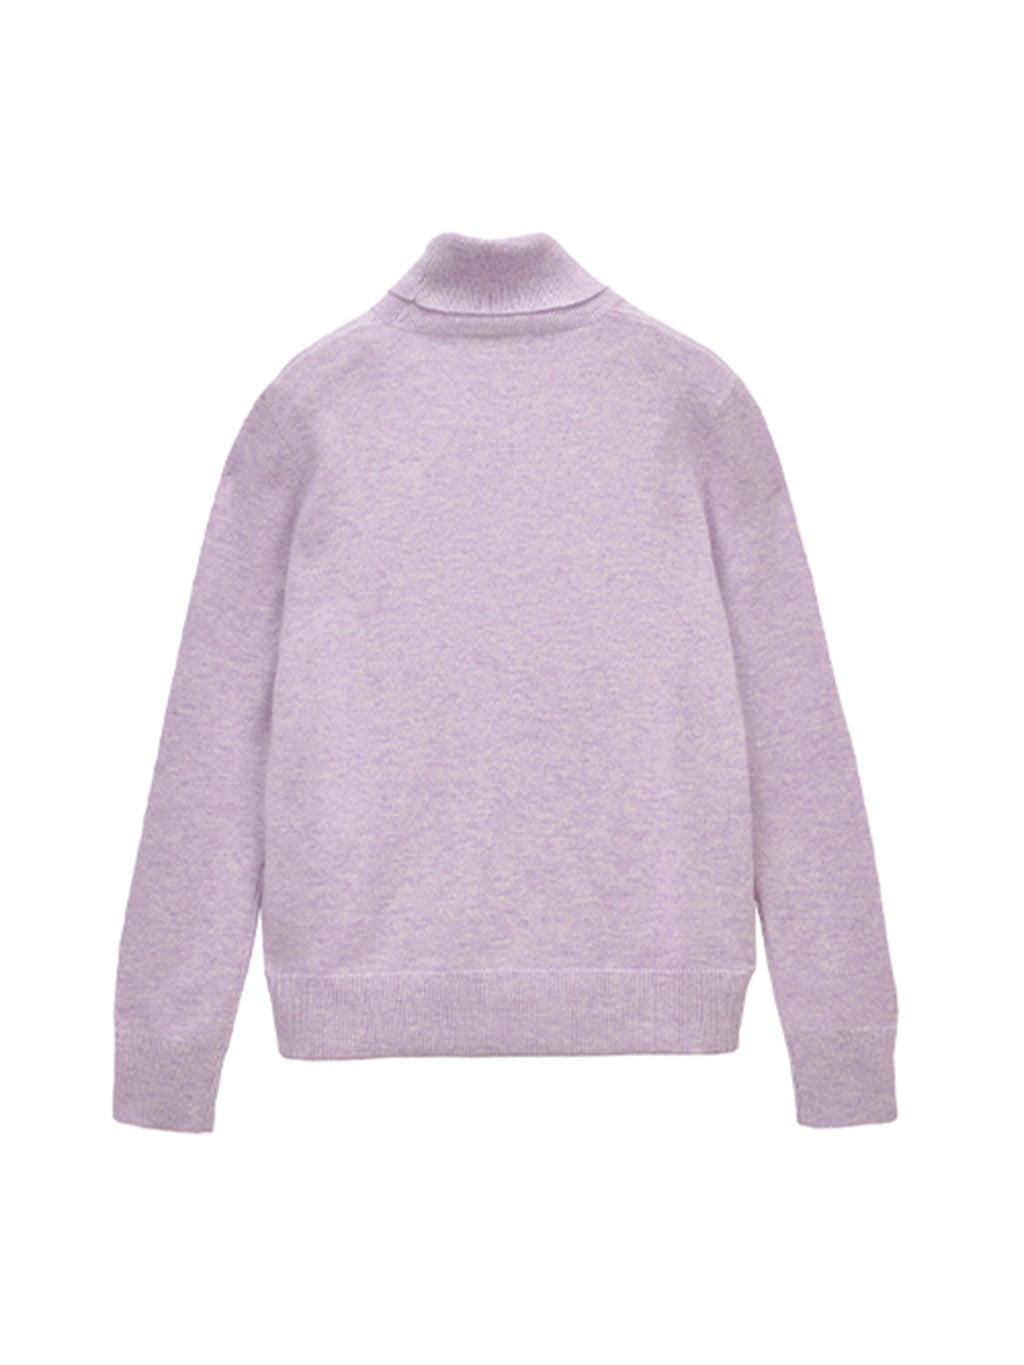 Turtleneck Sweater_Lavender